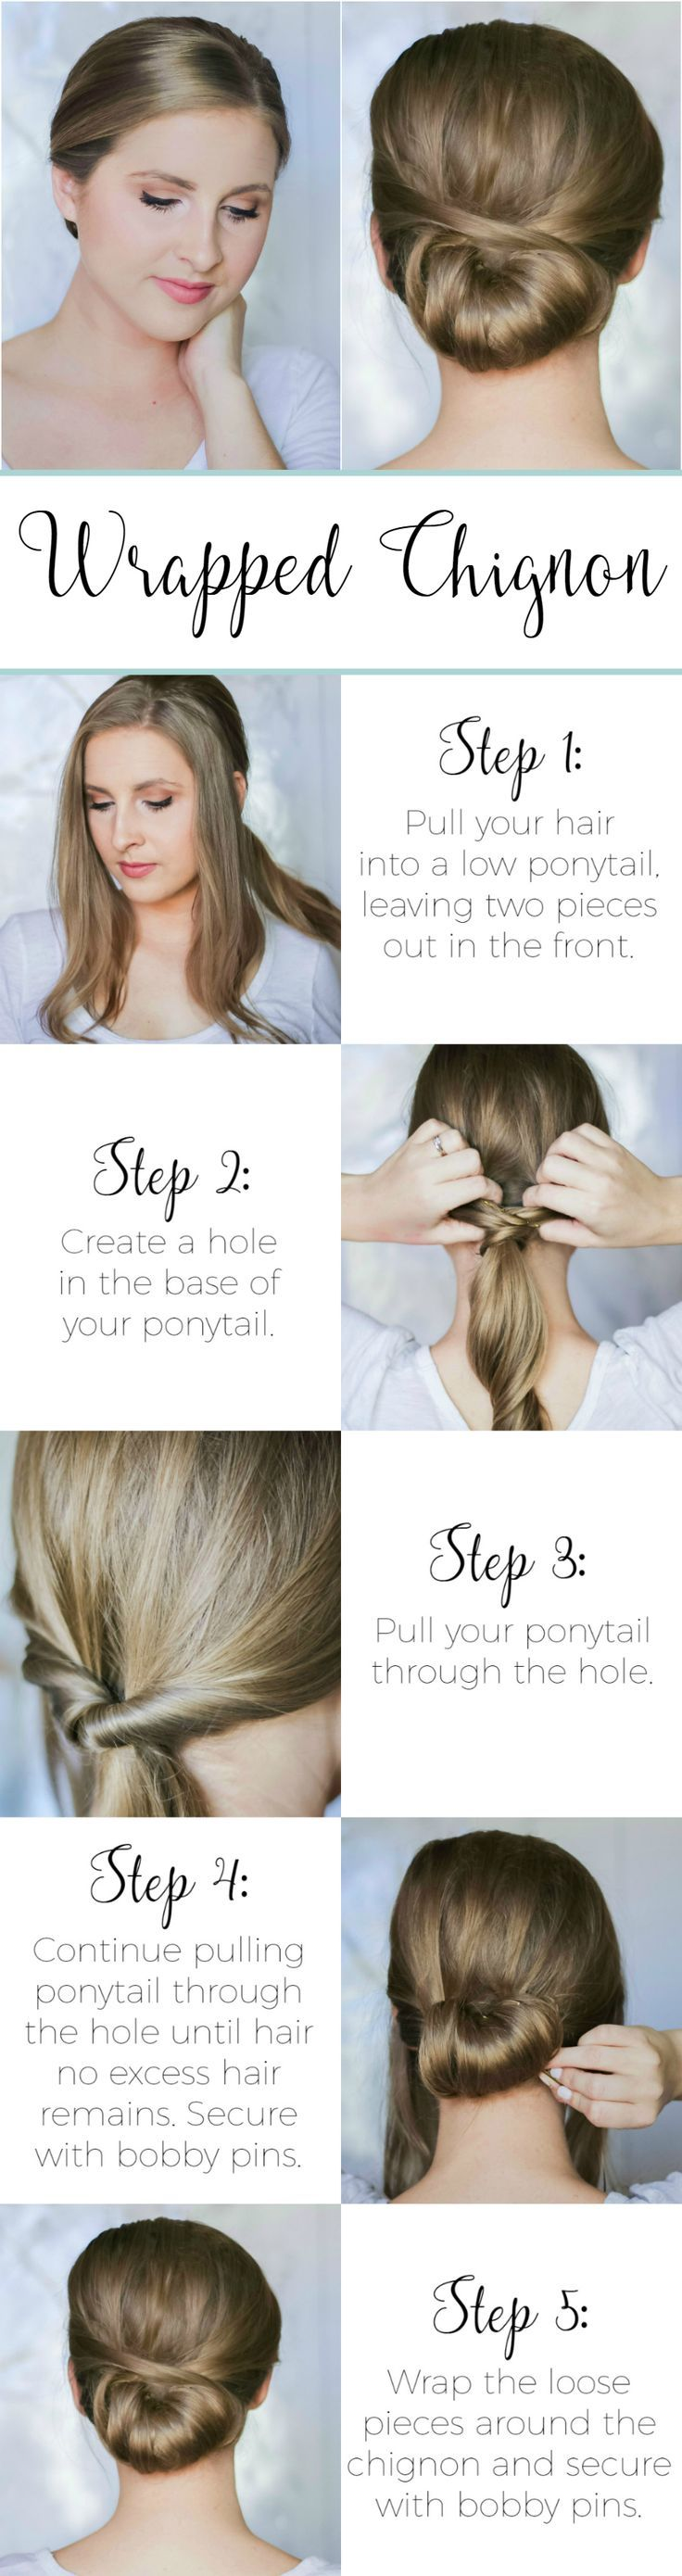 Best 25 Second day hairstyles ideas on Pinterest